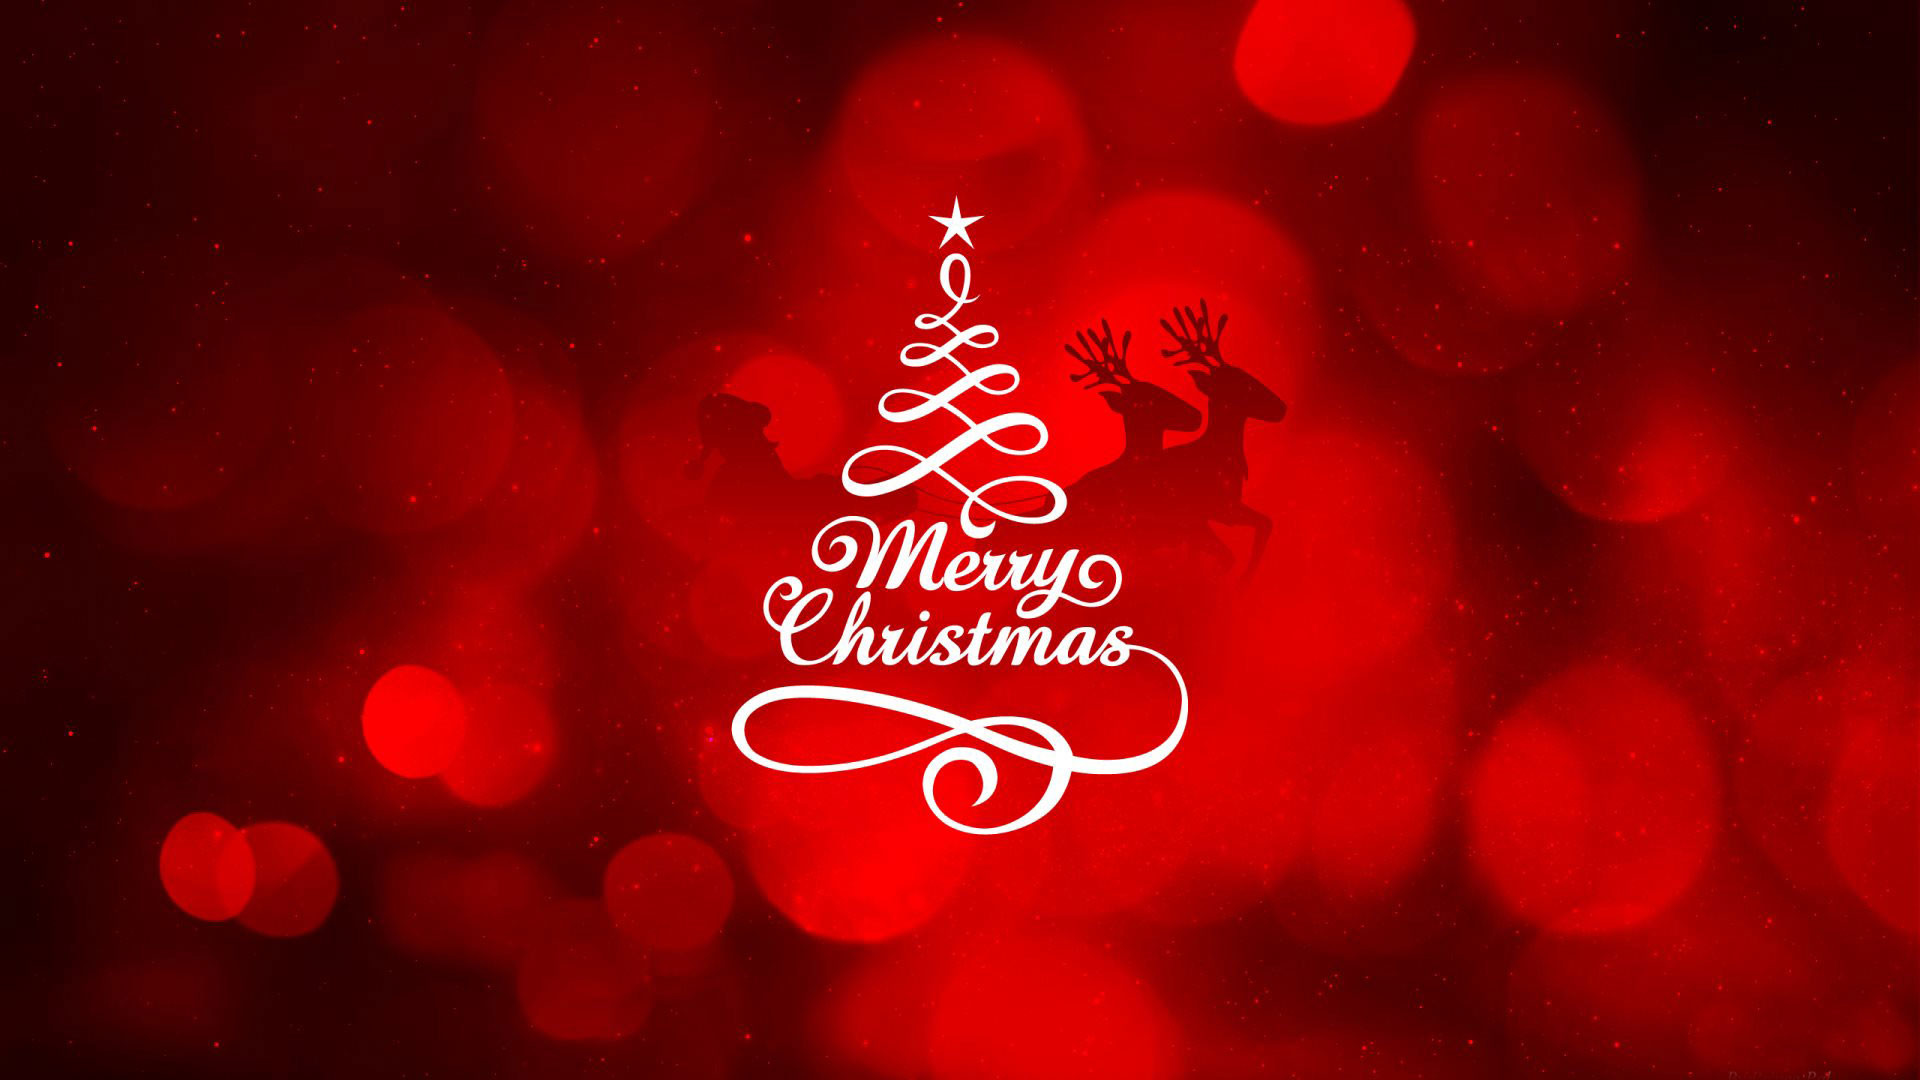 1920x1080 hd pics photos christmas merry christmas tree red desktop background  wallpaper